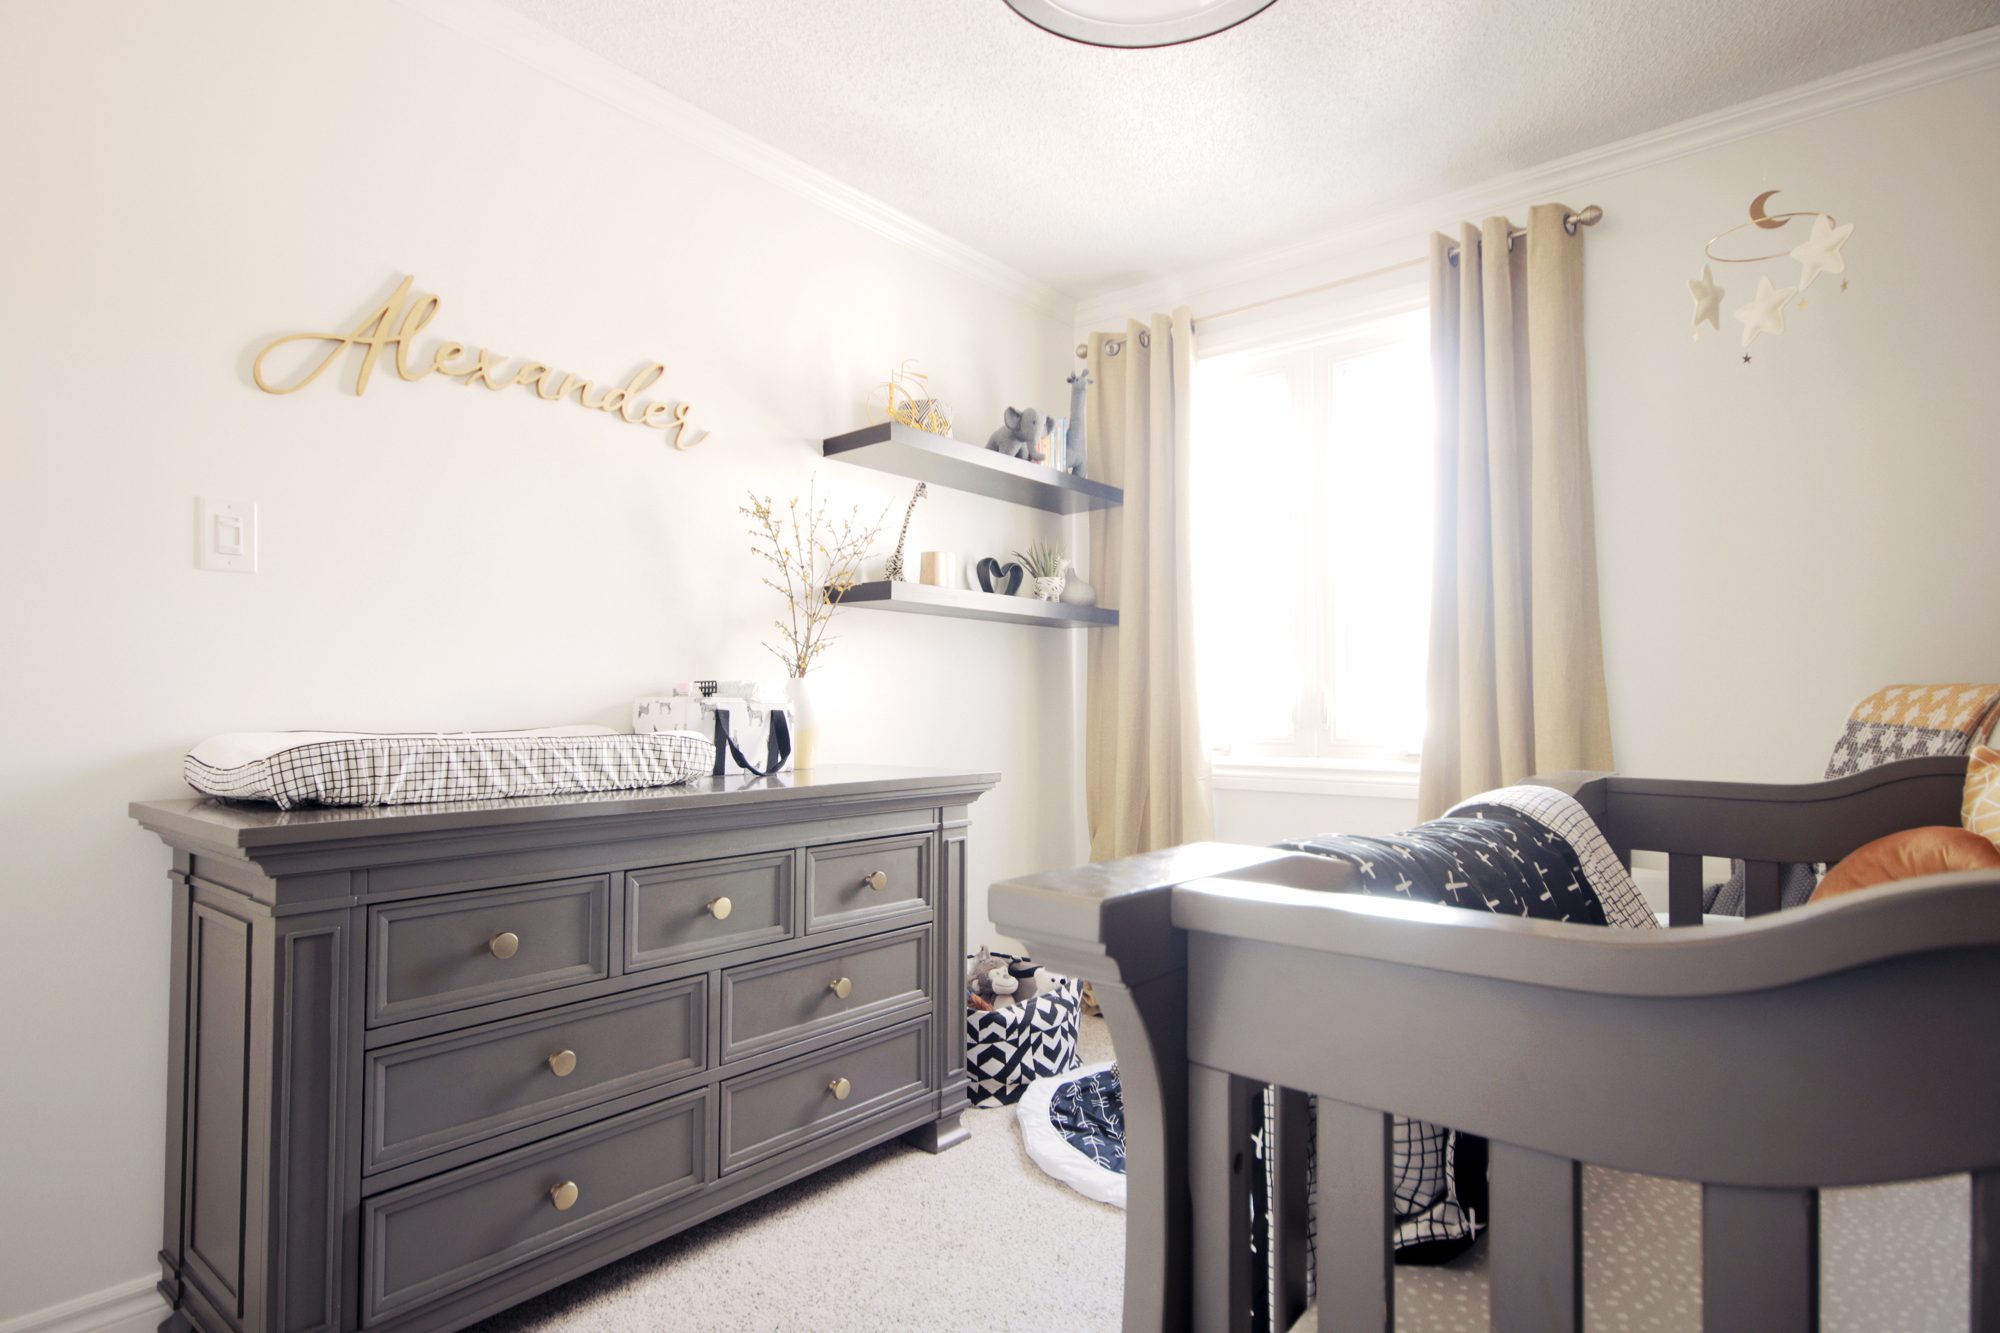 Warm white walls and golden accents keep the nursery feeling light and airy